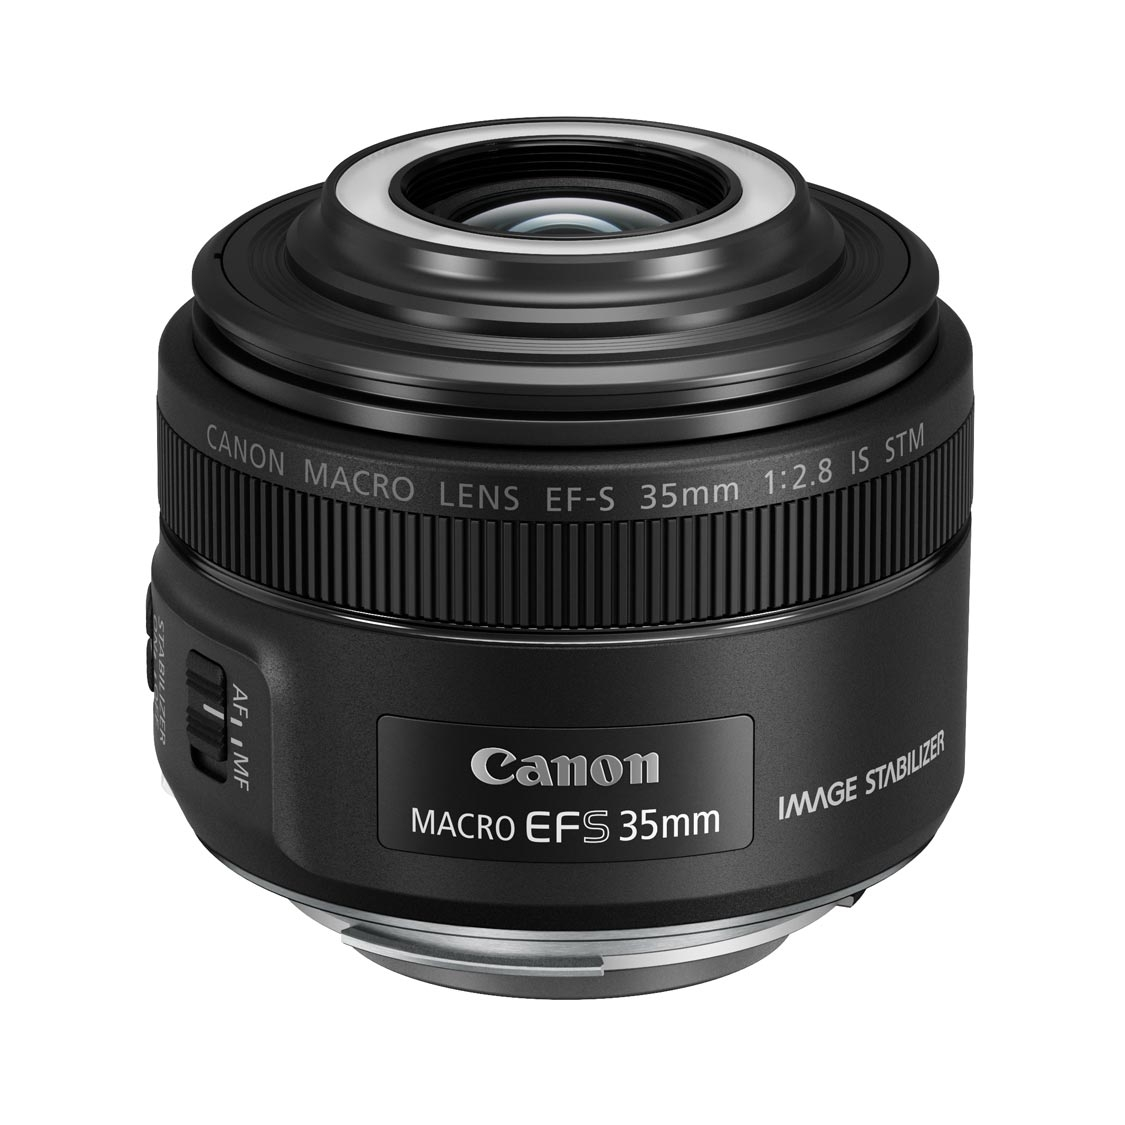 Canon EF-S 35mm f2.8 IS STM Macro Lens